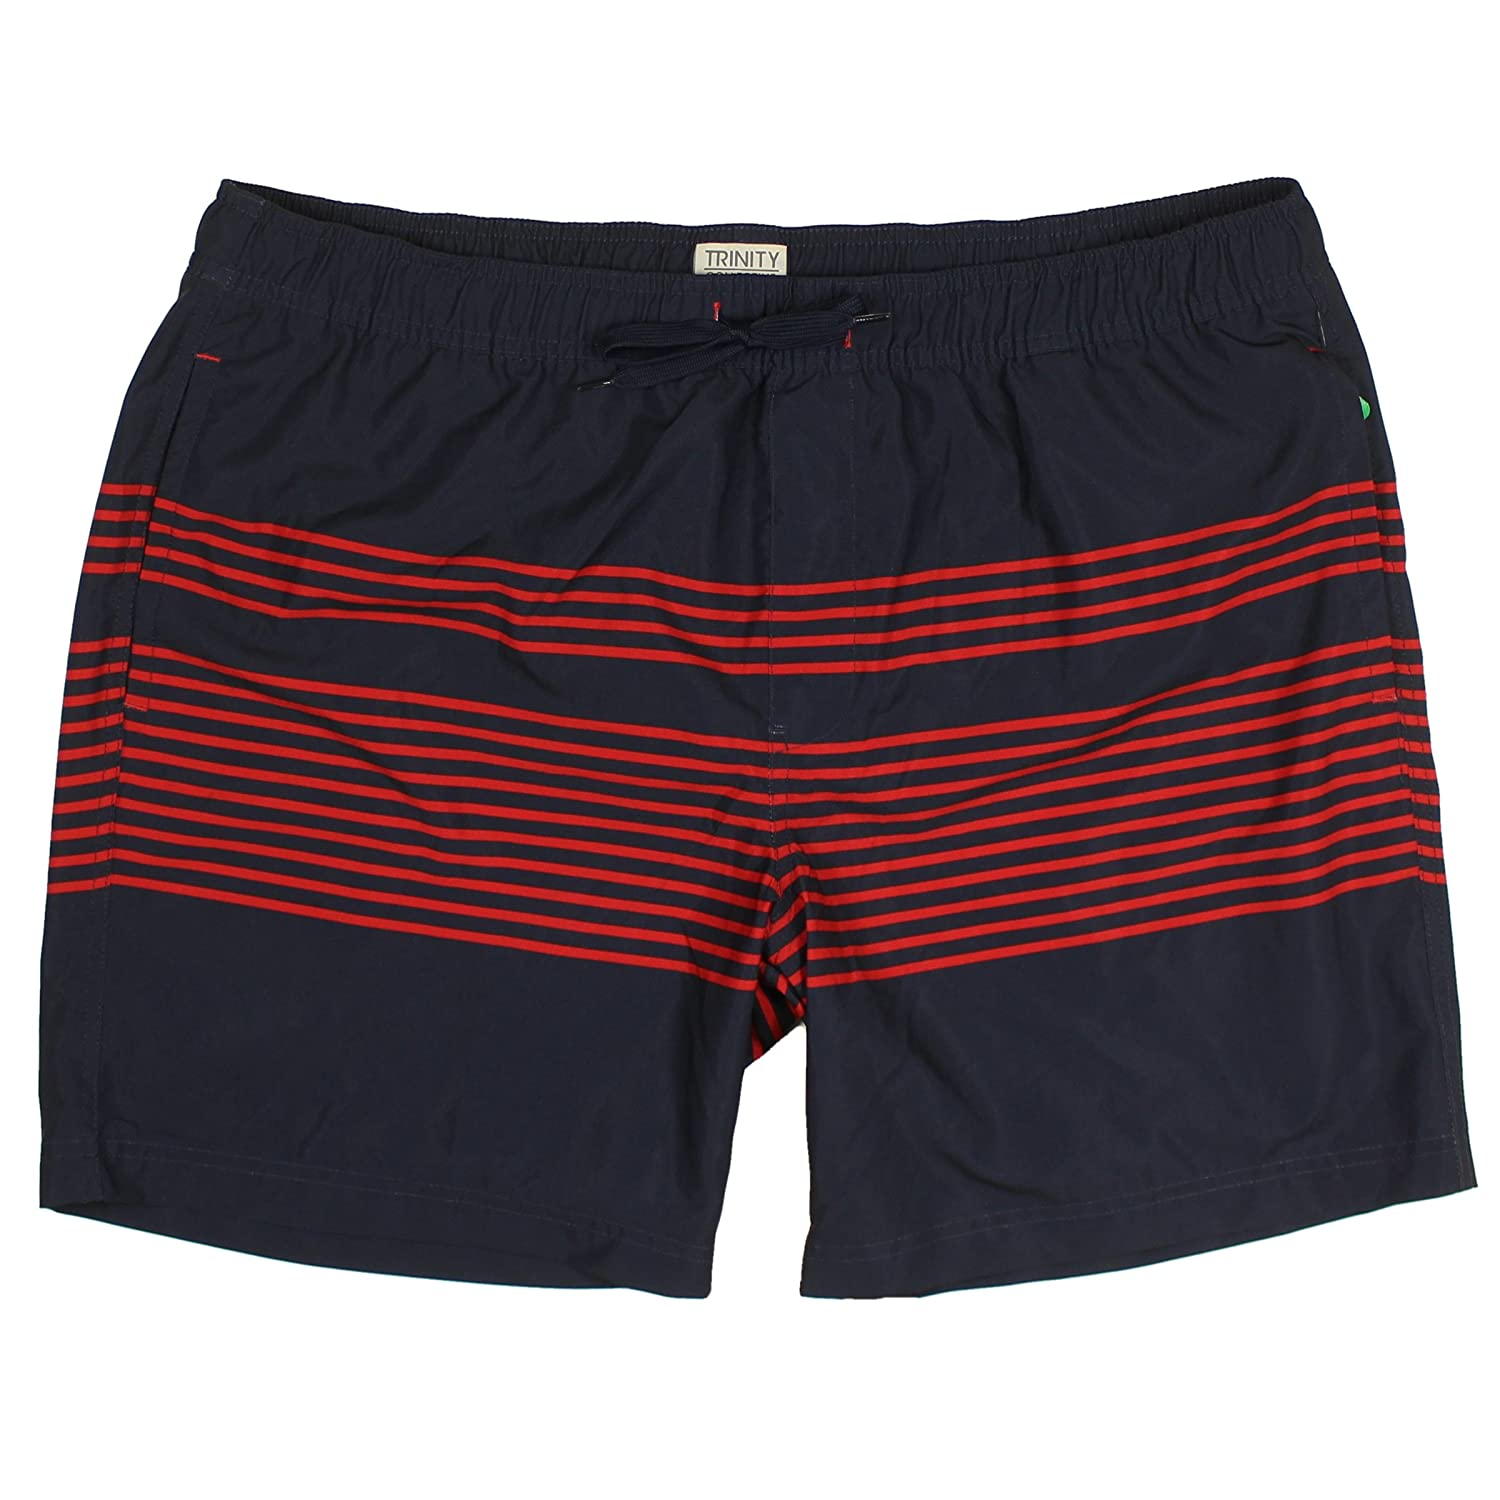 f17d3eb93d072 Trinity Men's Bathing Suit Swim Trunks Shorts | Amazon.com